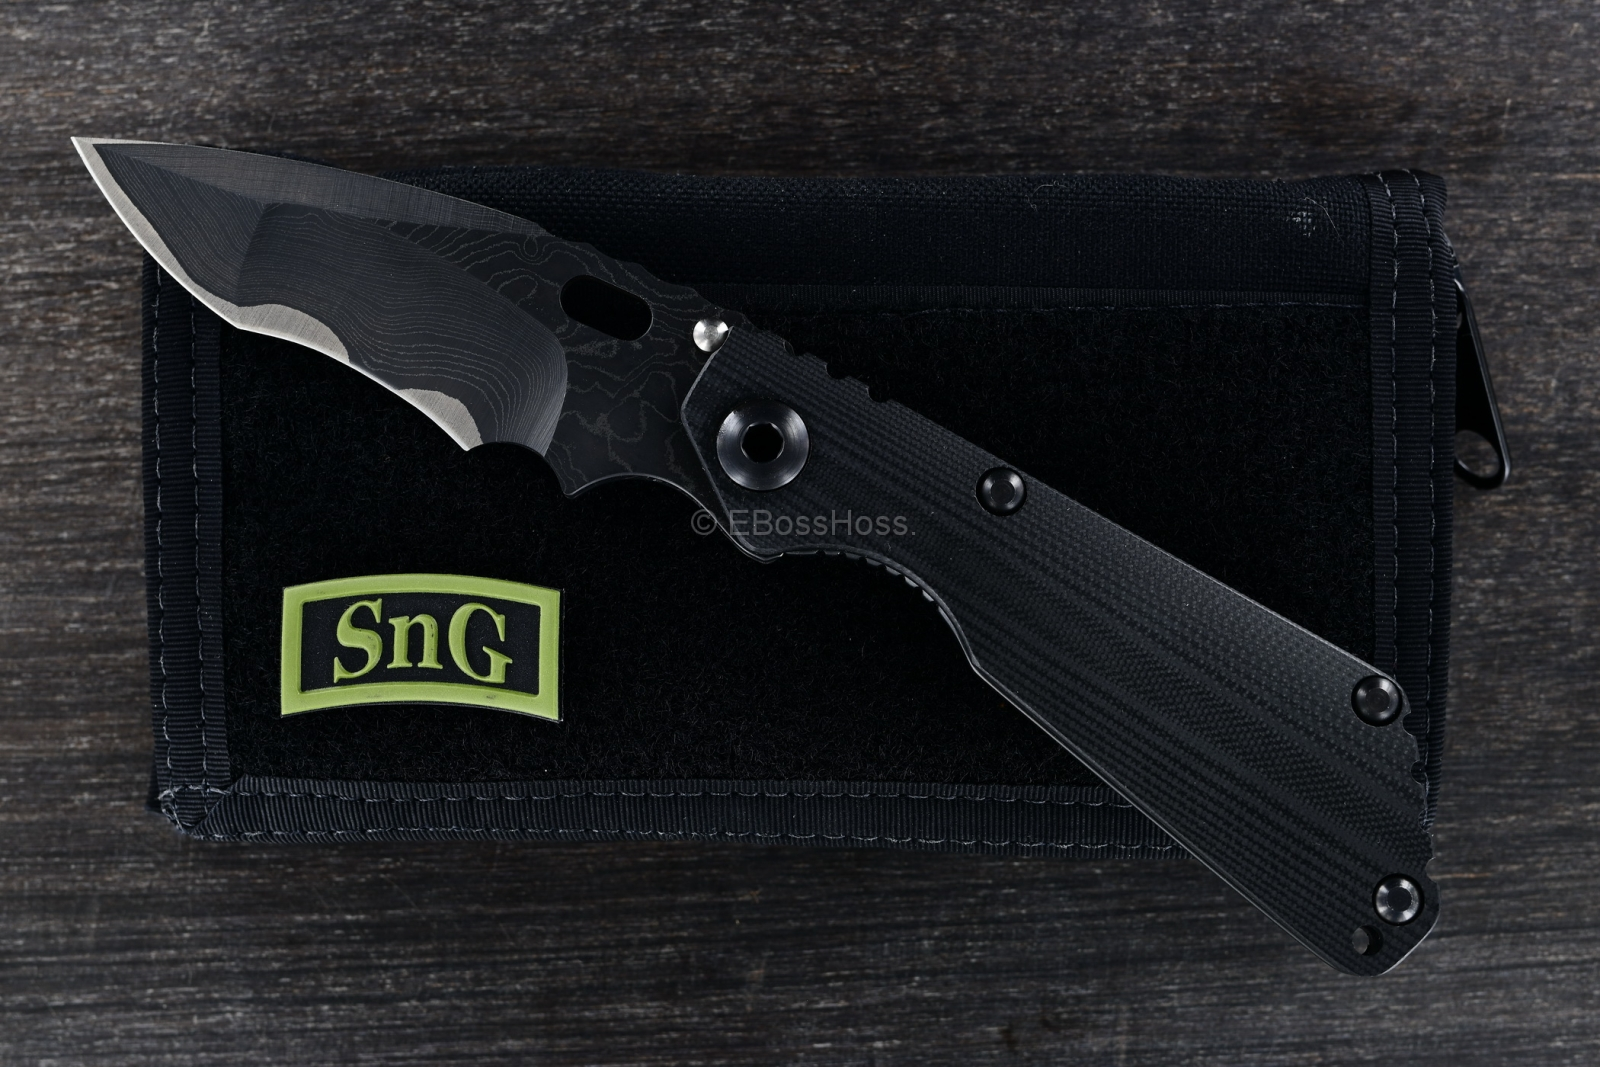 Mick Strider Custom (MSC) Stellite-core San Mai Damascus Nightmare SnG